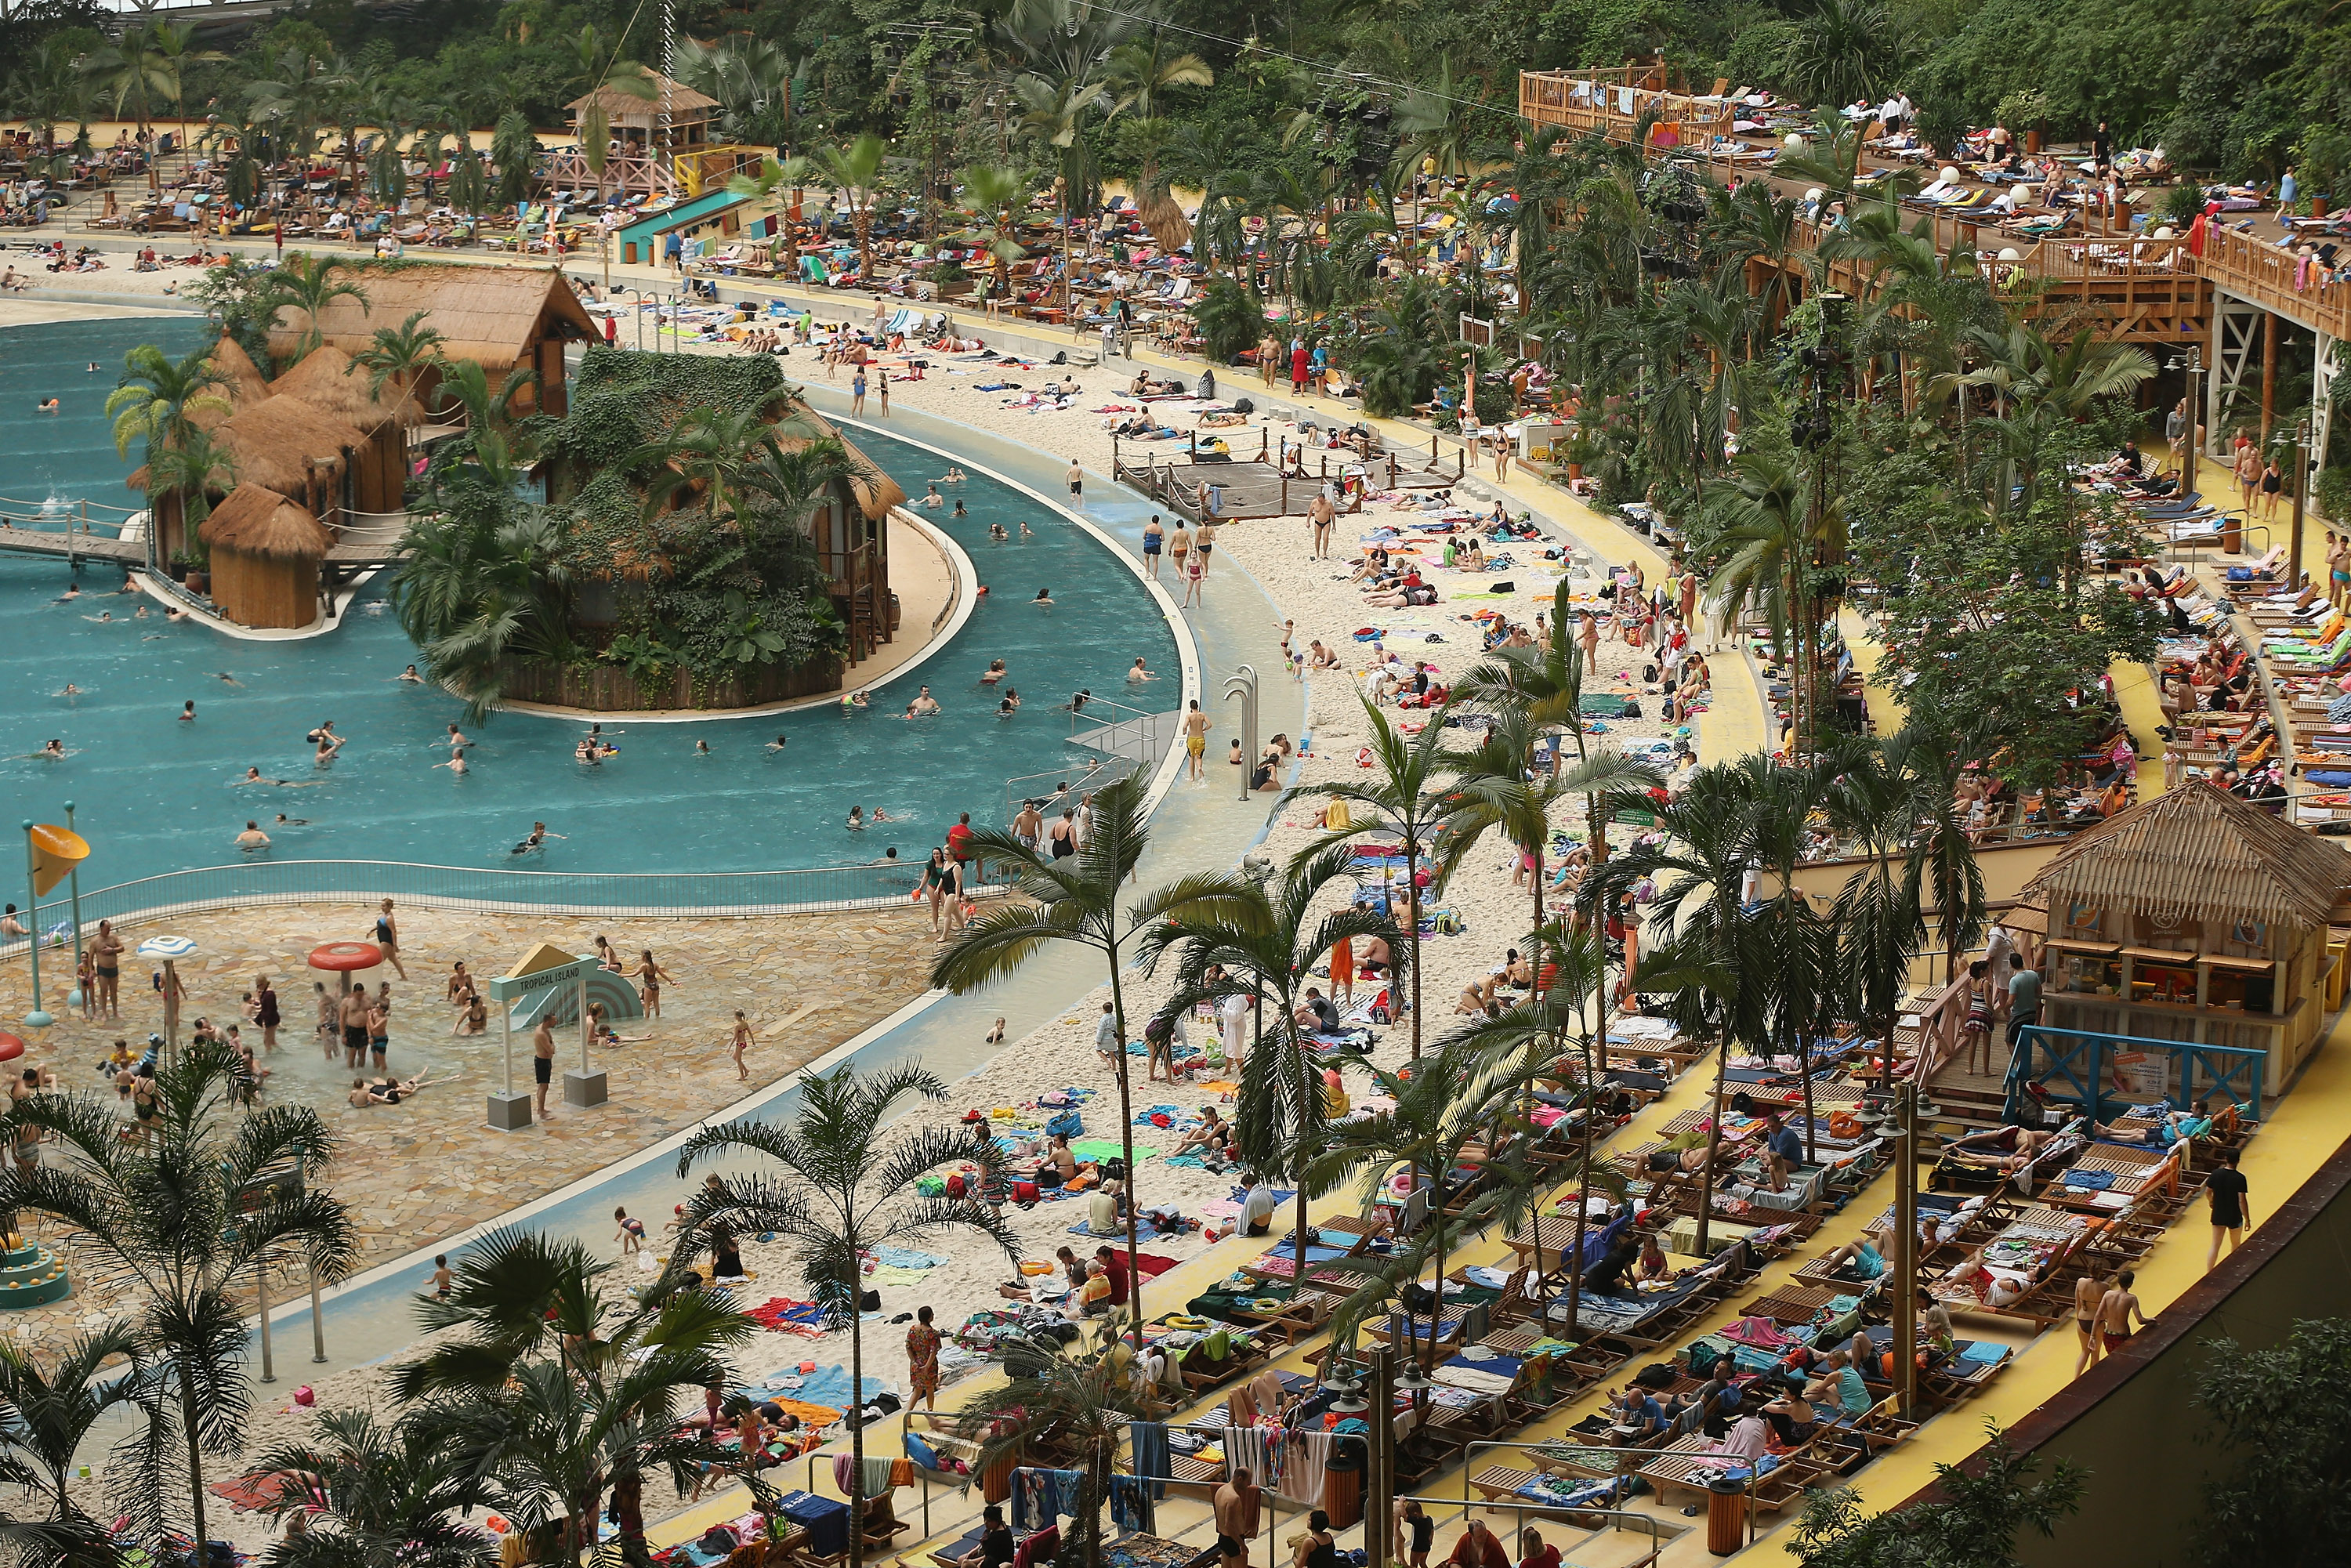 Visitors lounge at the  South Sea  beach at the Tropical Islands indoor resort on Feb. 15, 2013 in Krausnick, Germany.